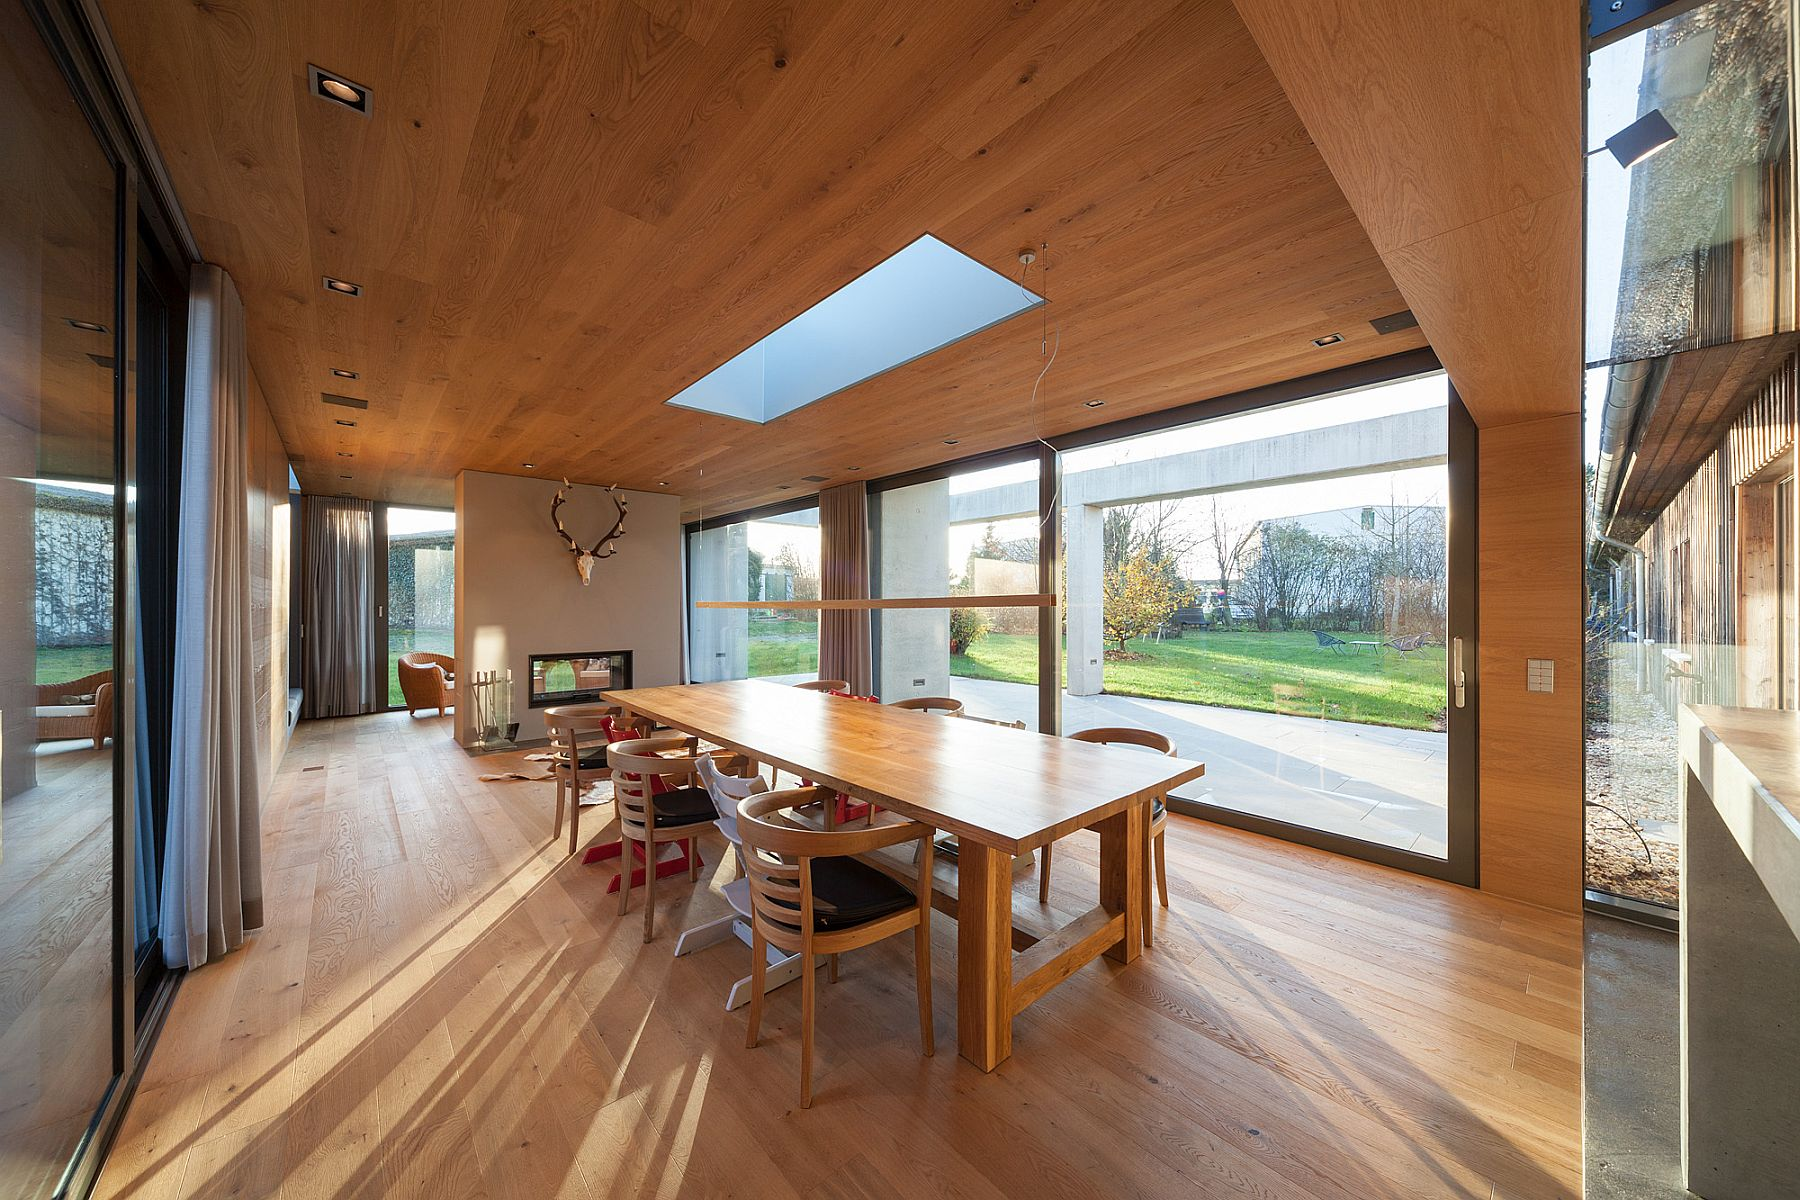 DIning room draped in wood with skylight and unabated view of the green scenery outside